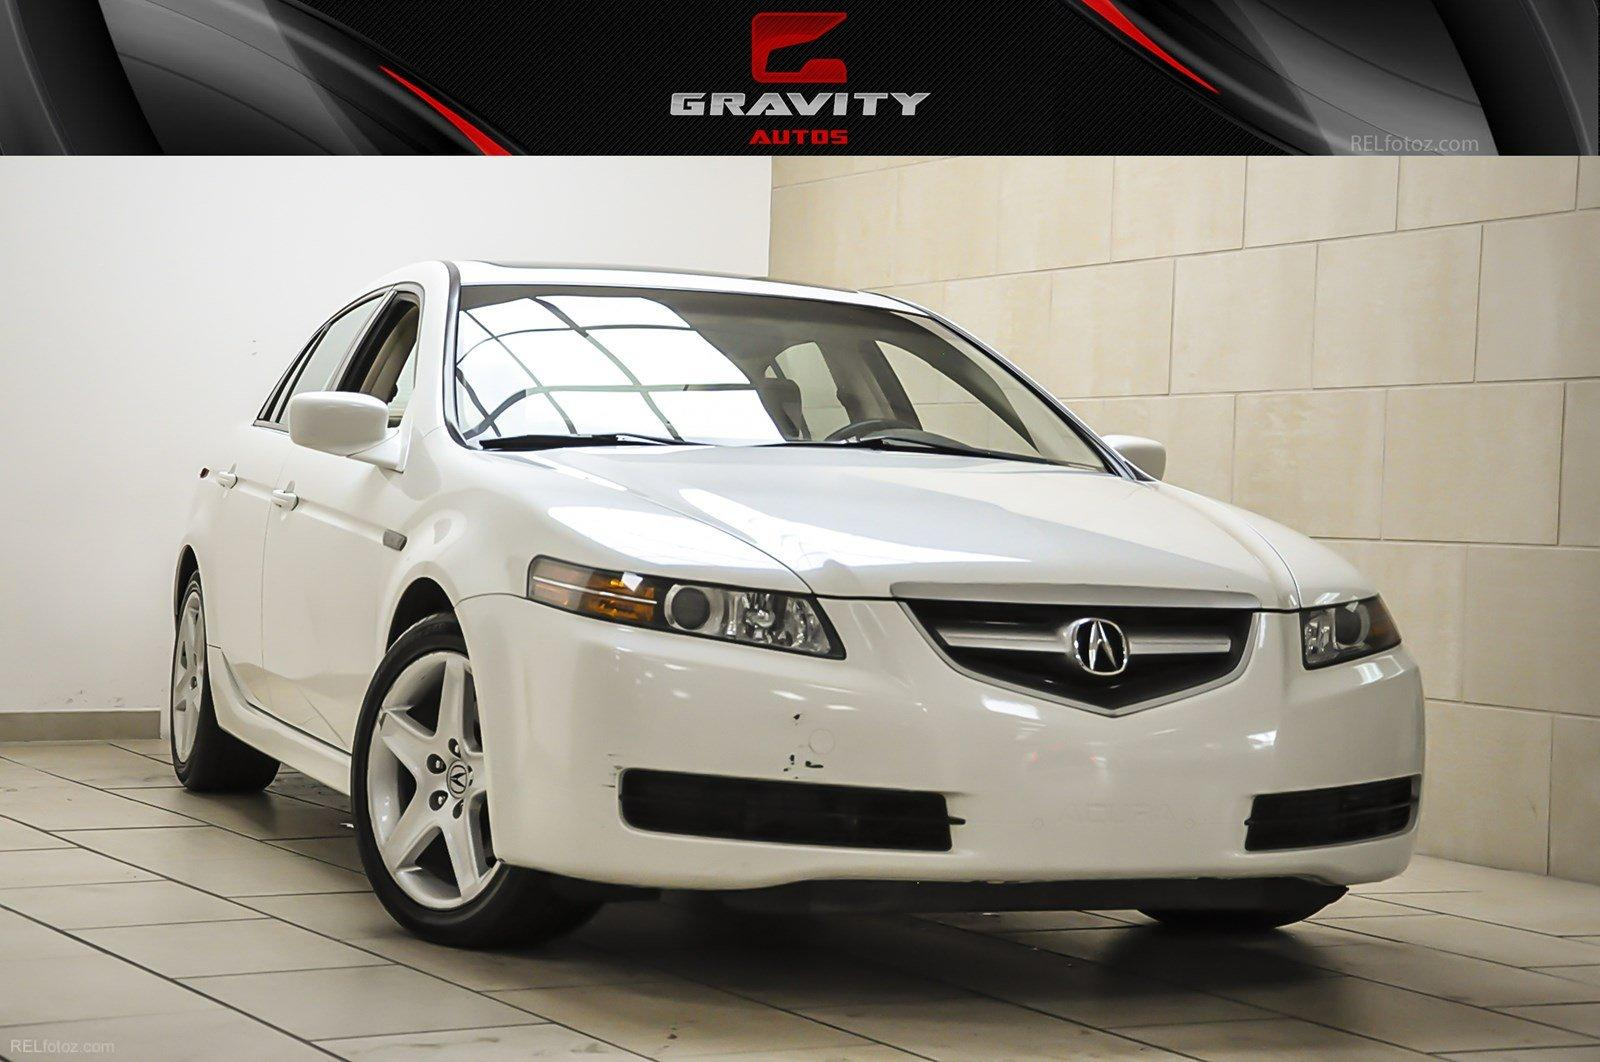 2006 acura tl stock 012560 for sale near sandy springs ga ga